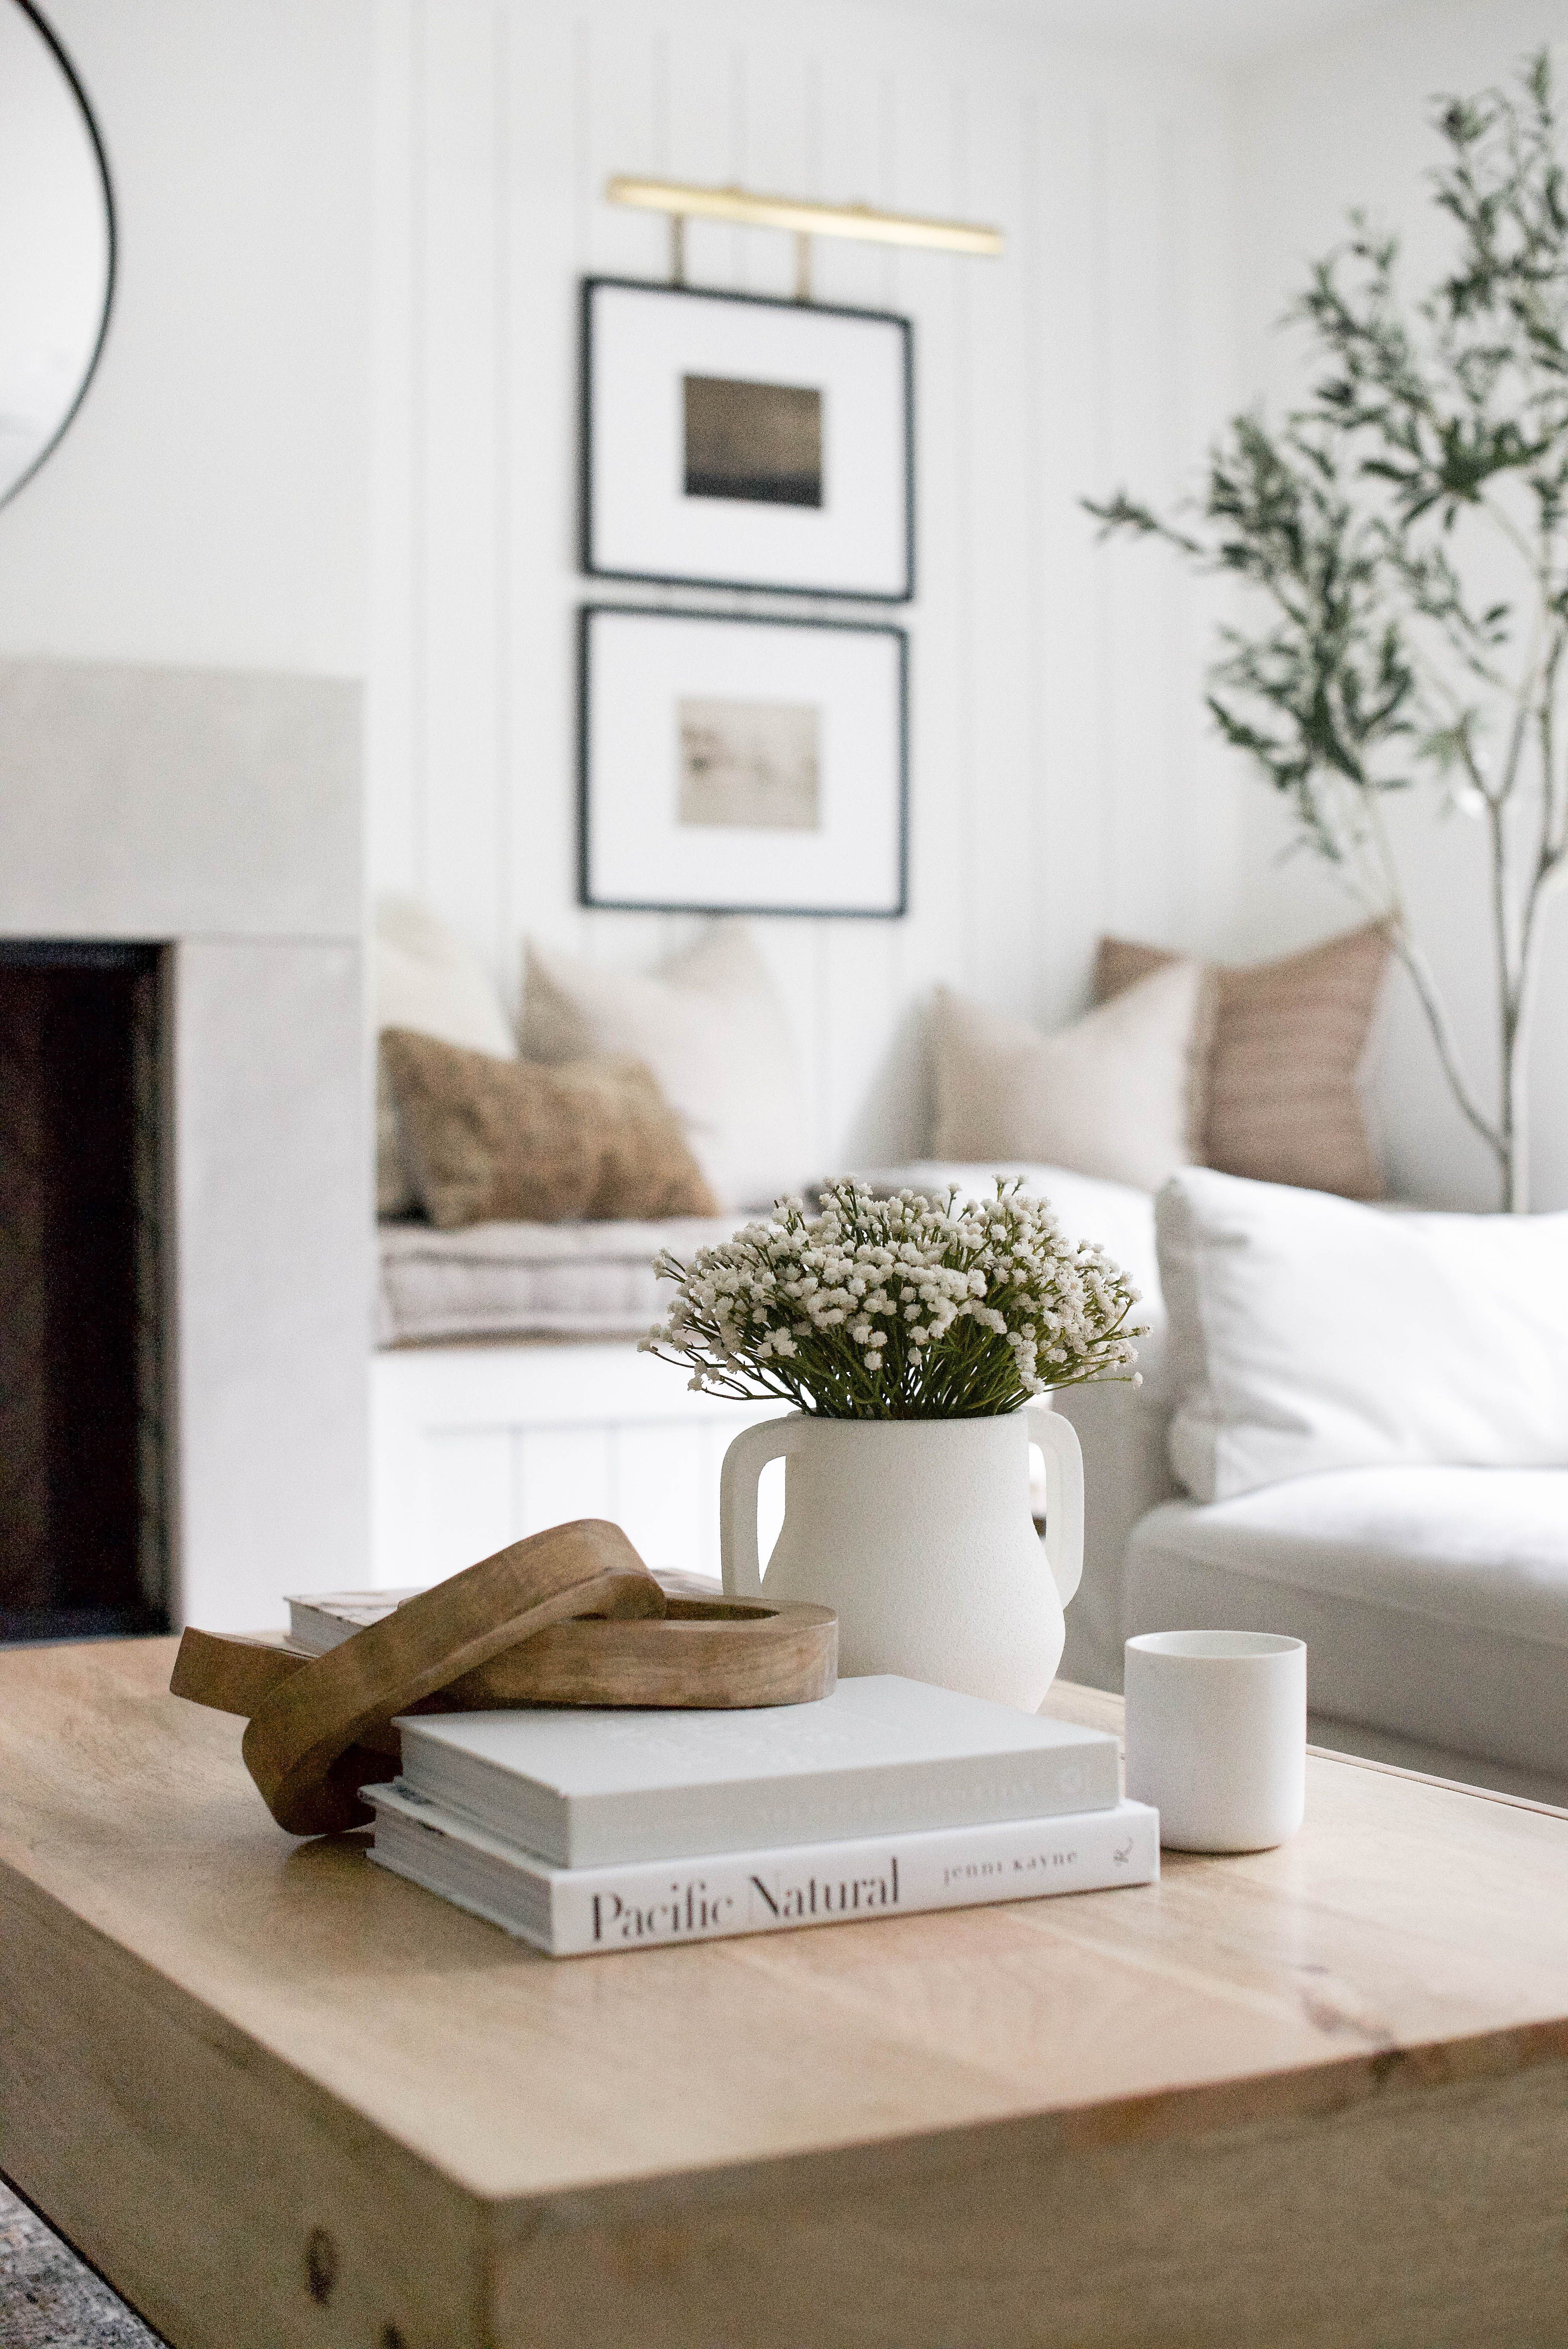 Coffee Table Styling Ideas In 2021 Home Decor Styles Home Decor Decor [ 6014 x 4015 Pixel ]